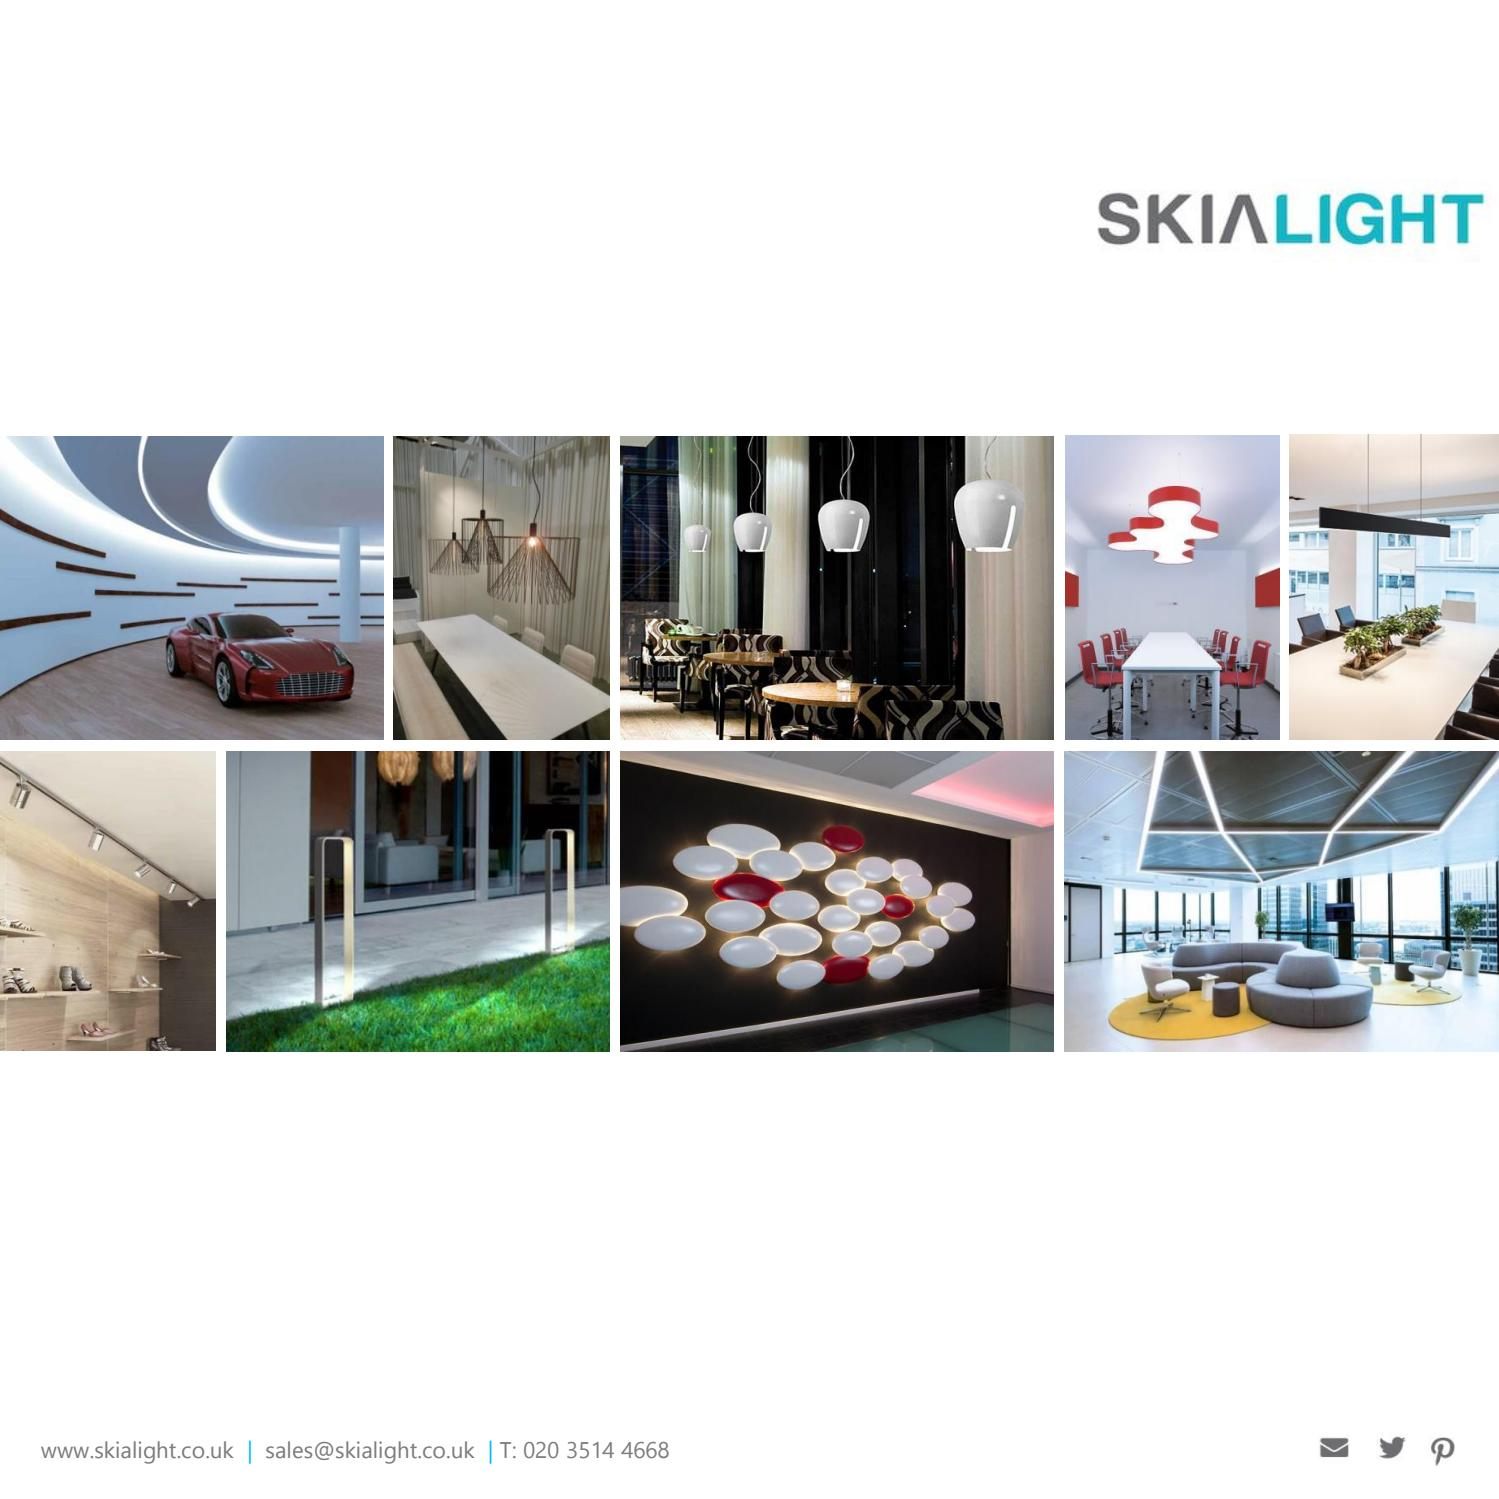 Wever Ducre Trendy Light Fixtures Distributed By Skialight By - 282 Goldene Uhr Von Haas Cie